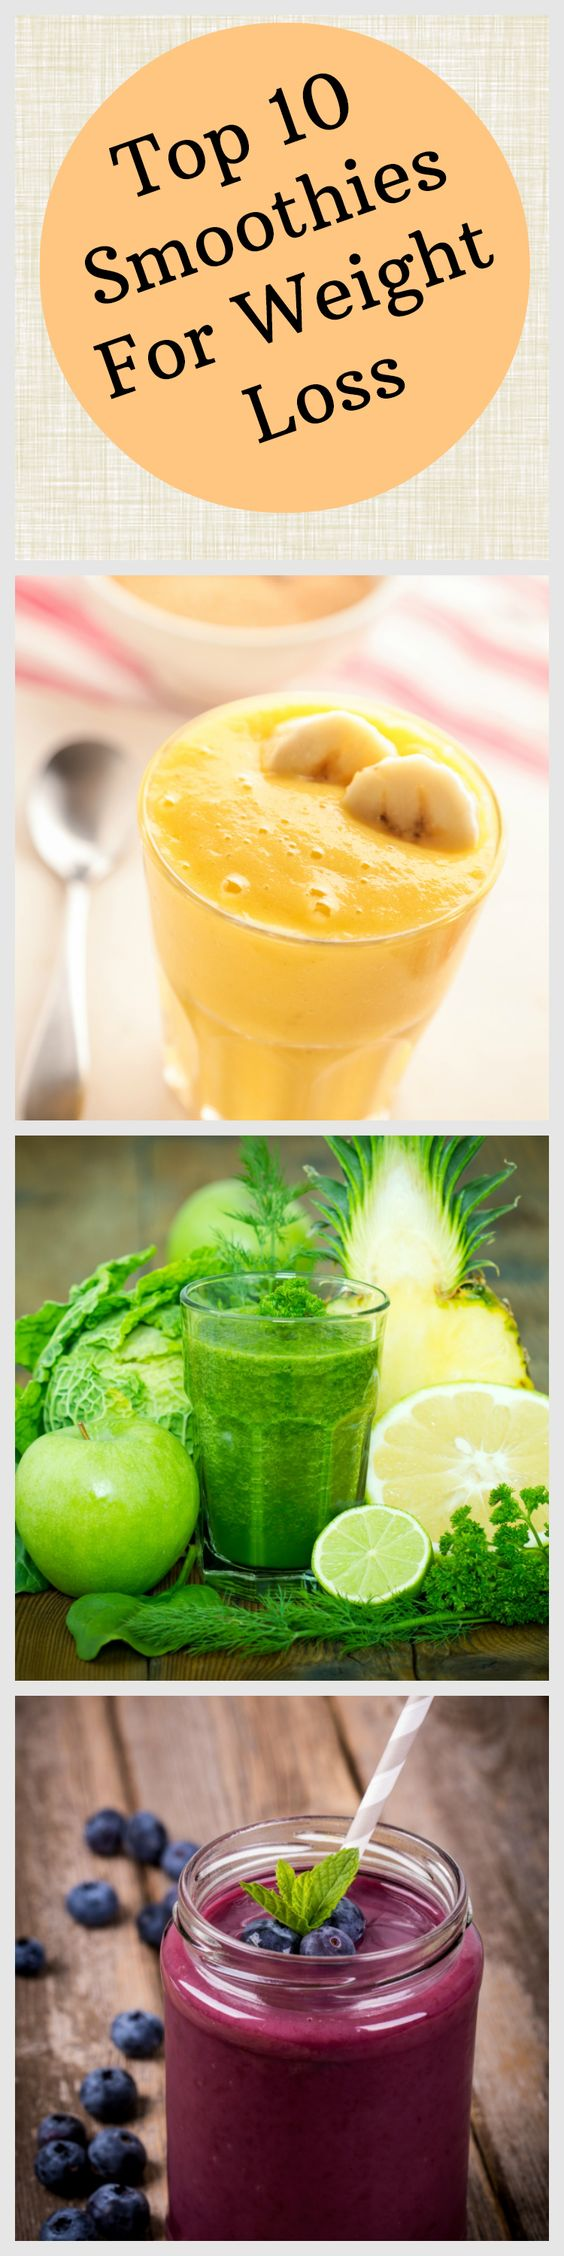 10 Awesome Smoothies for Weight Loss - All Nutribullet Recipes